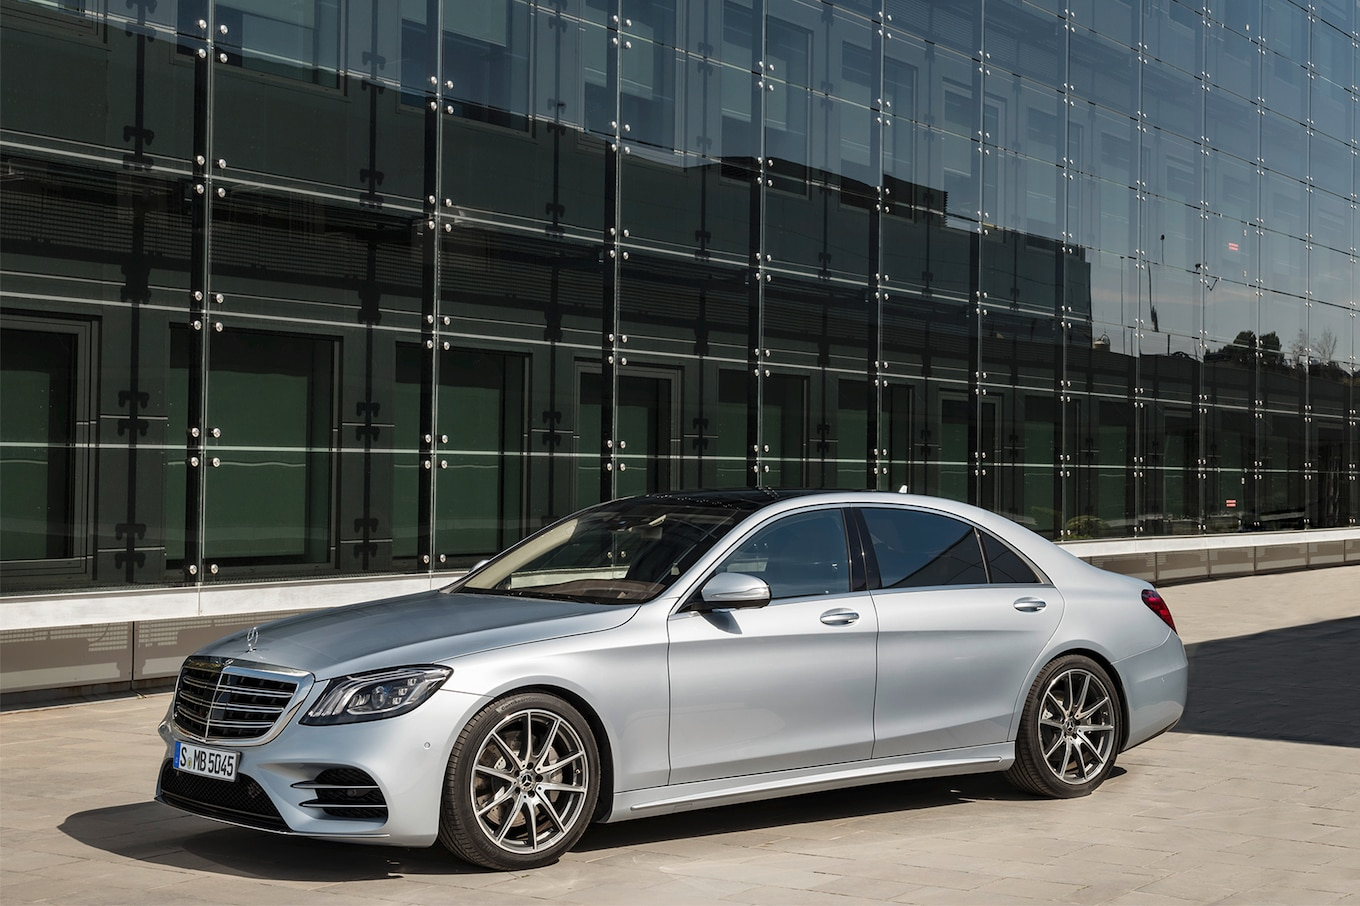 2018 Mercedes Benz S Class Reviews And Rating Motortrend